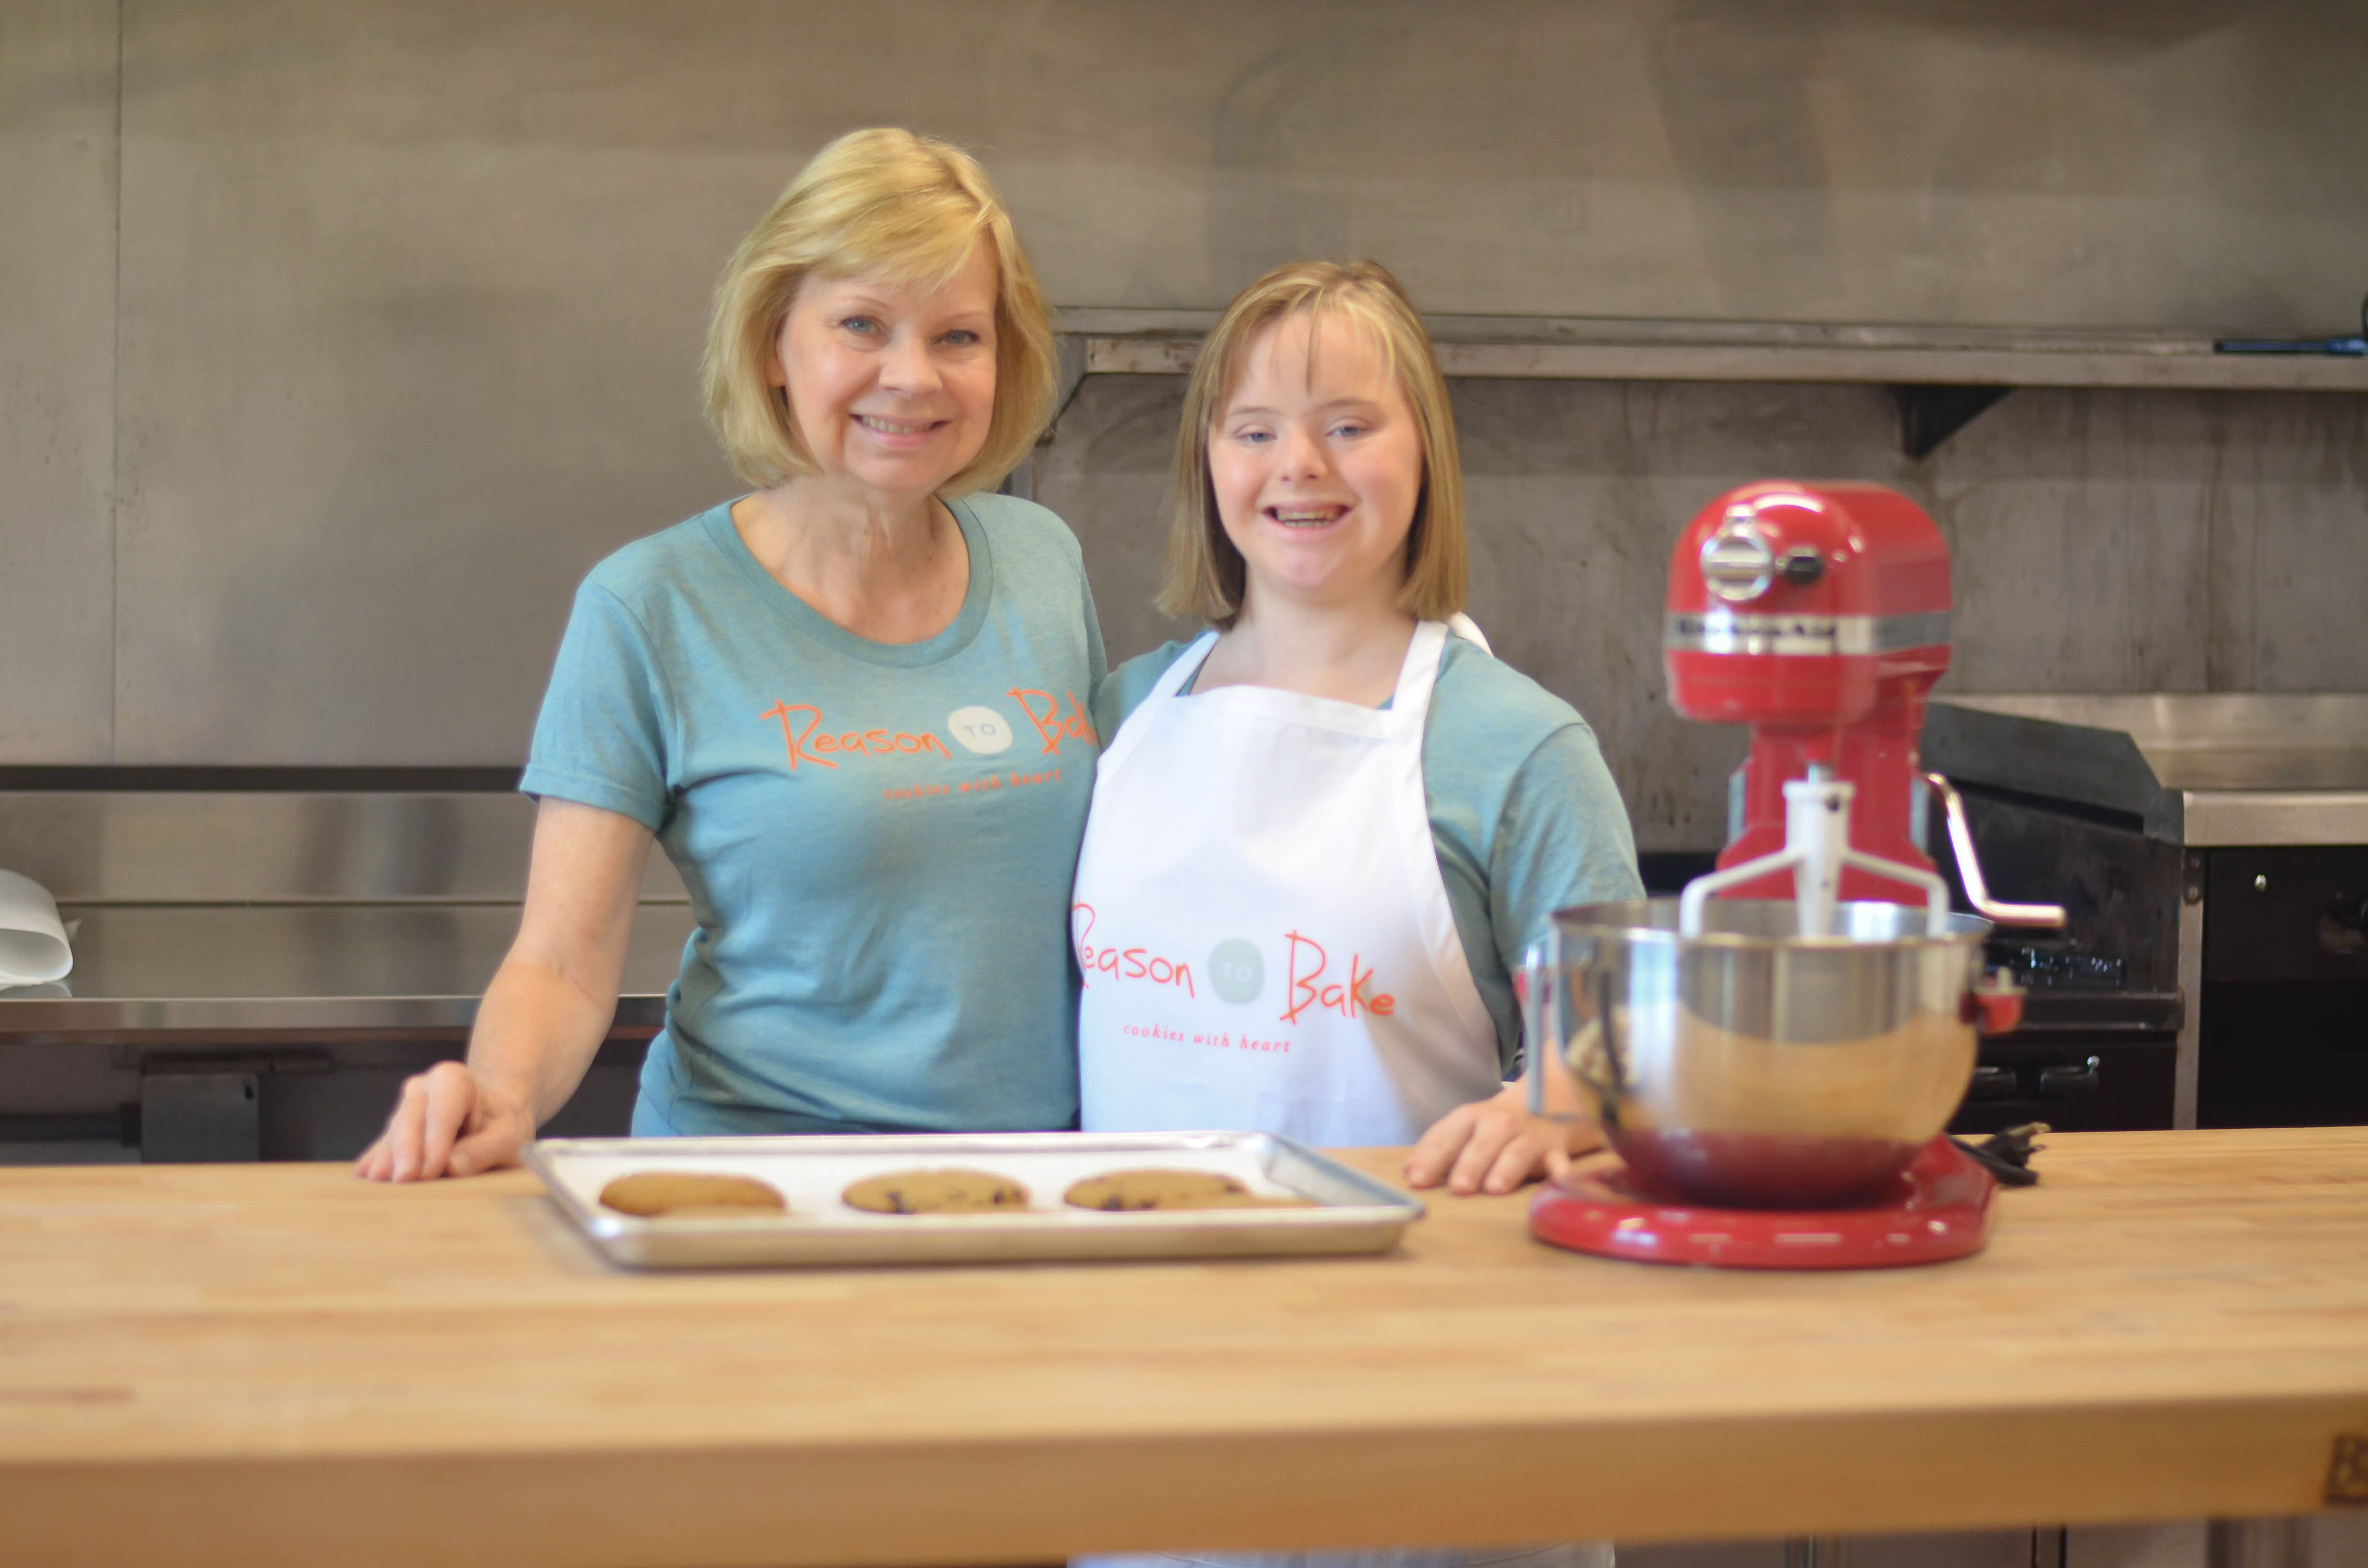 How a Gluten-Free Cookie Startup Gave Wings To My Daughter's Dream